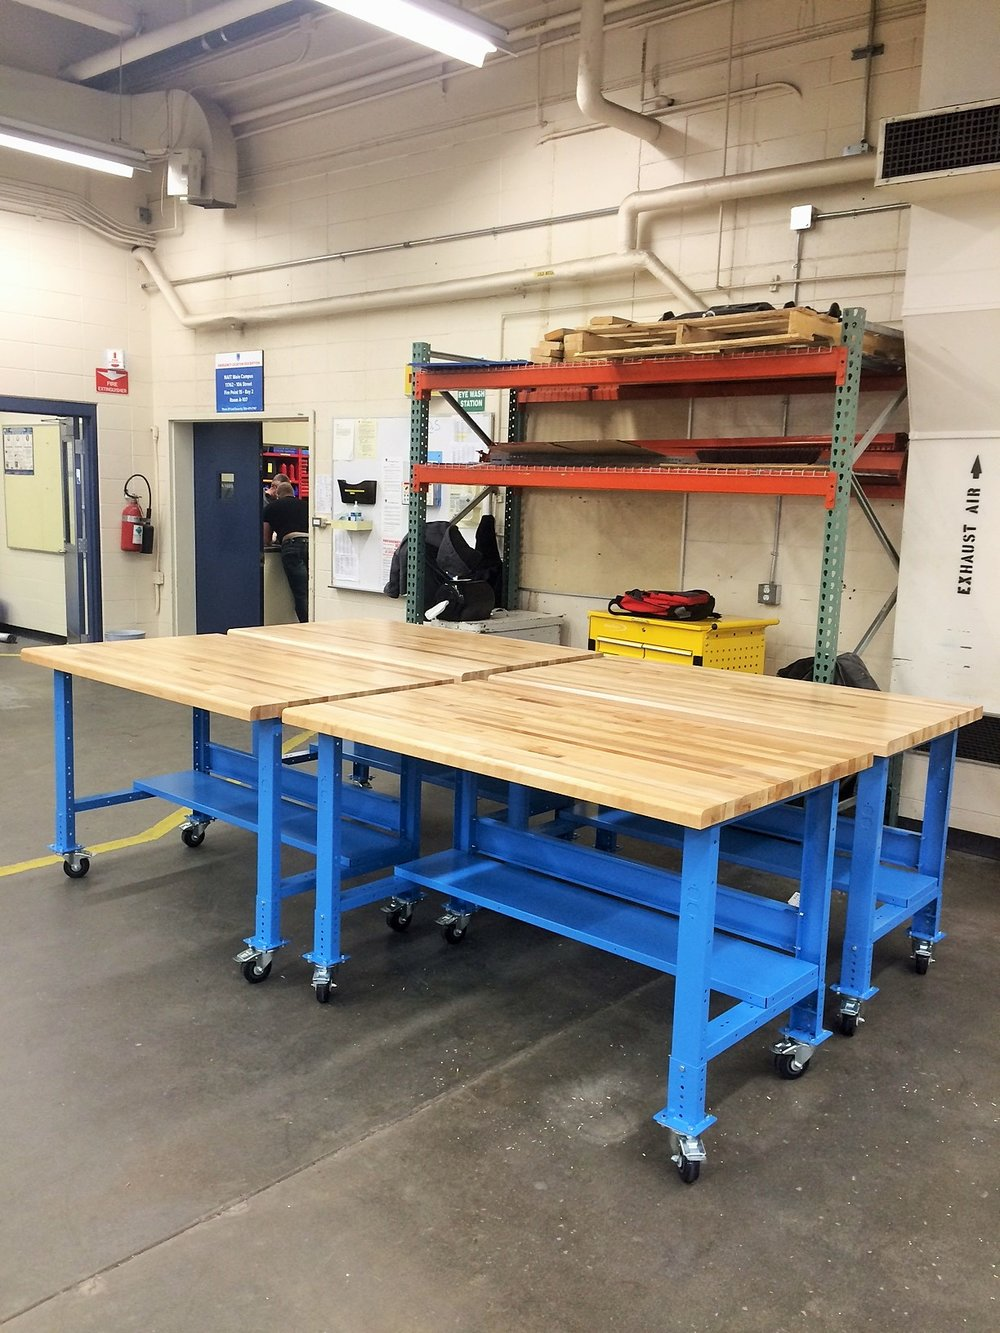 Nait workbenches.JPG